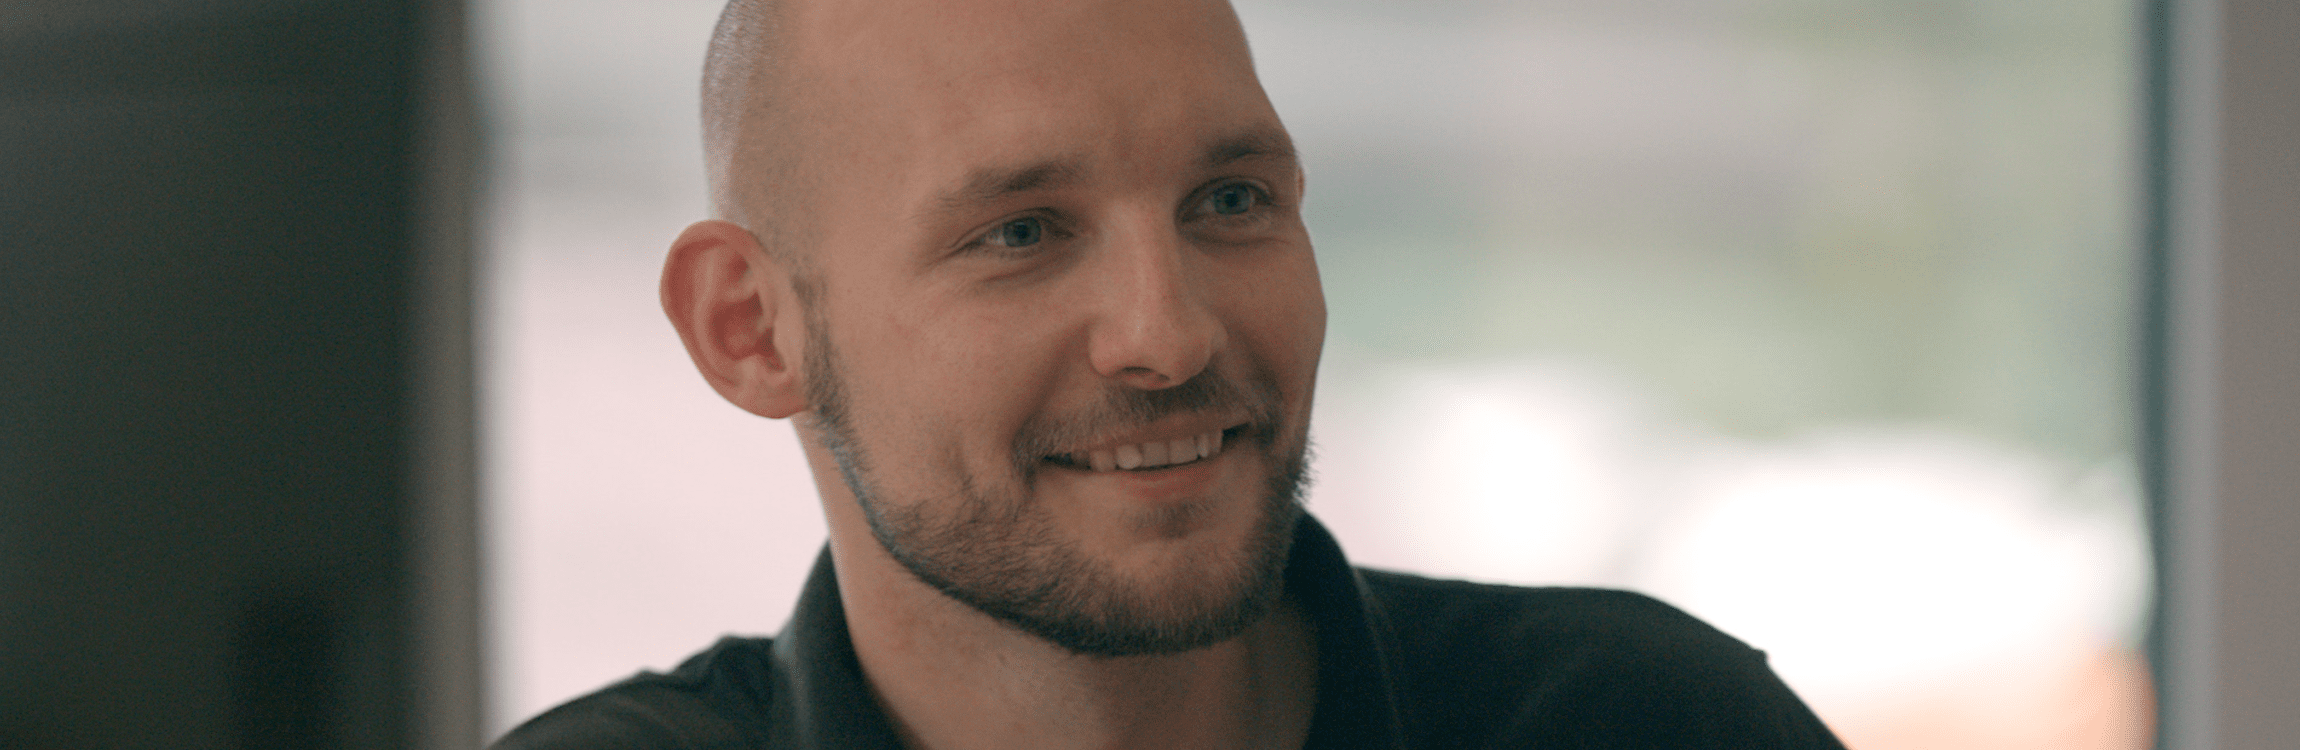 Growing Together - Florian Kaffl, Sales Project Manager bei TGW